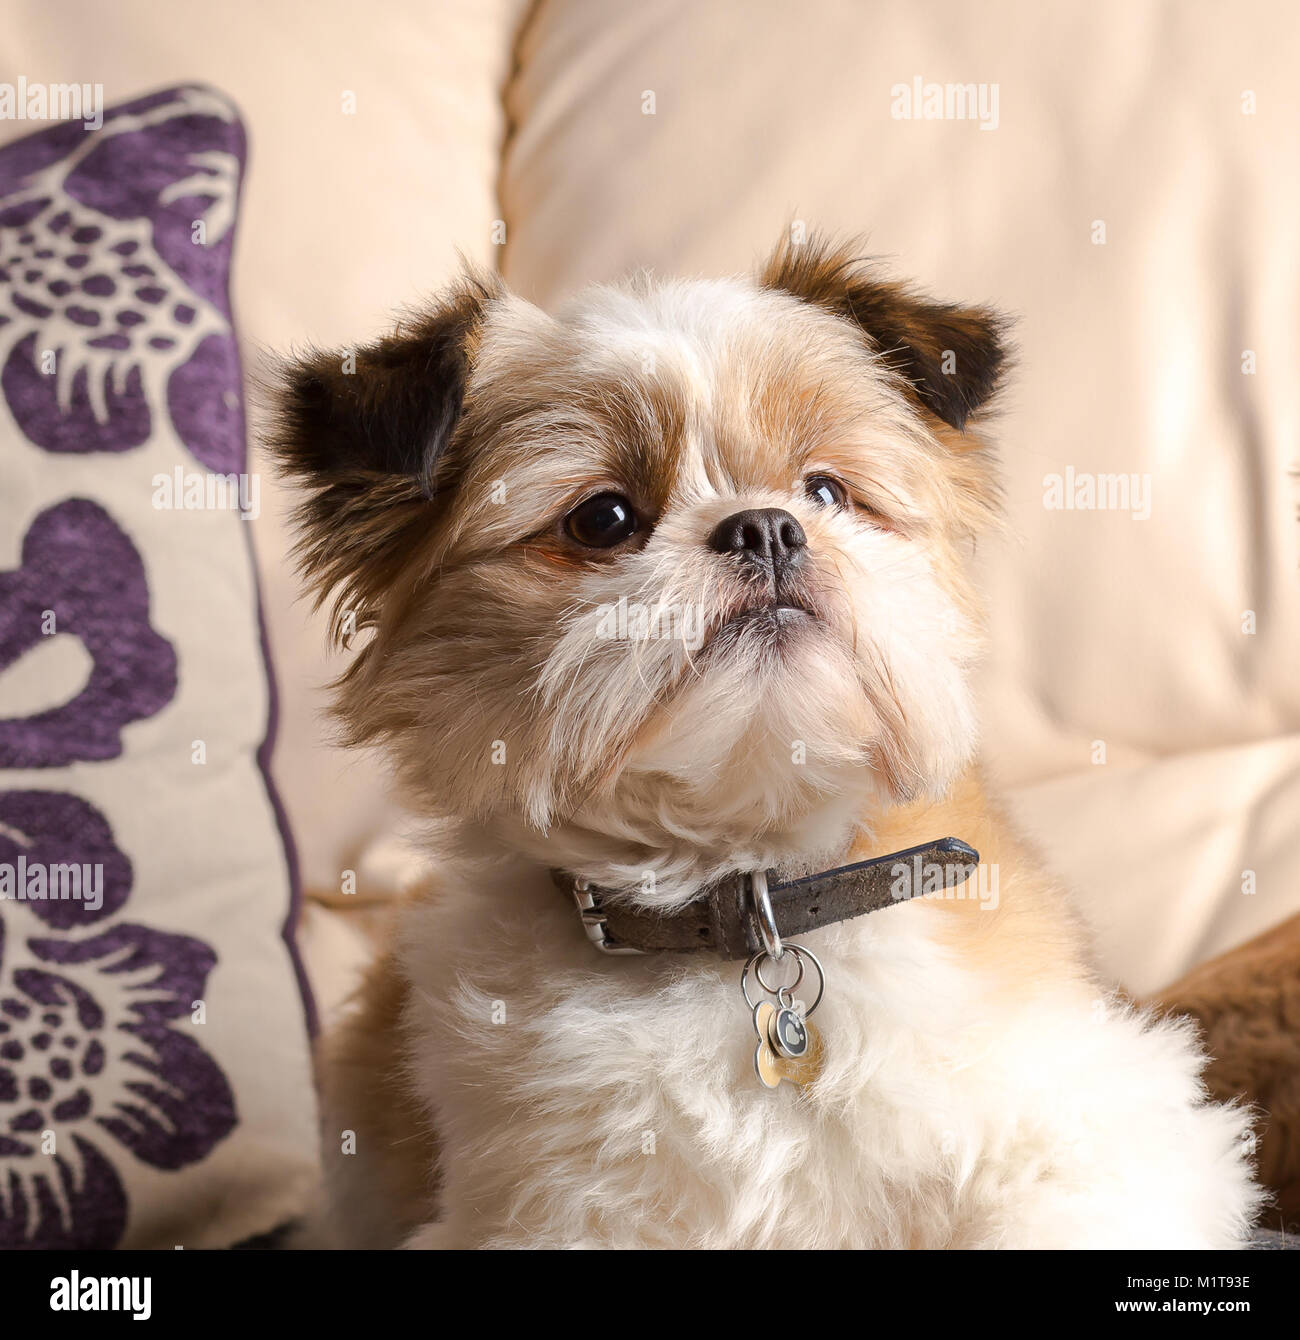 Close up: family pet dog, Pomeranian Shih Tzu, nice & comfy on leather sofa at home! Much-loved family member - Stock Image